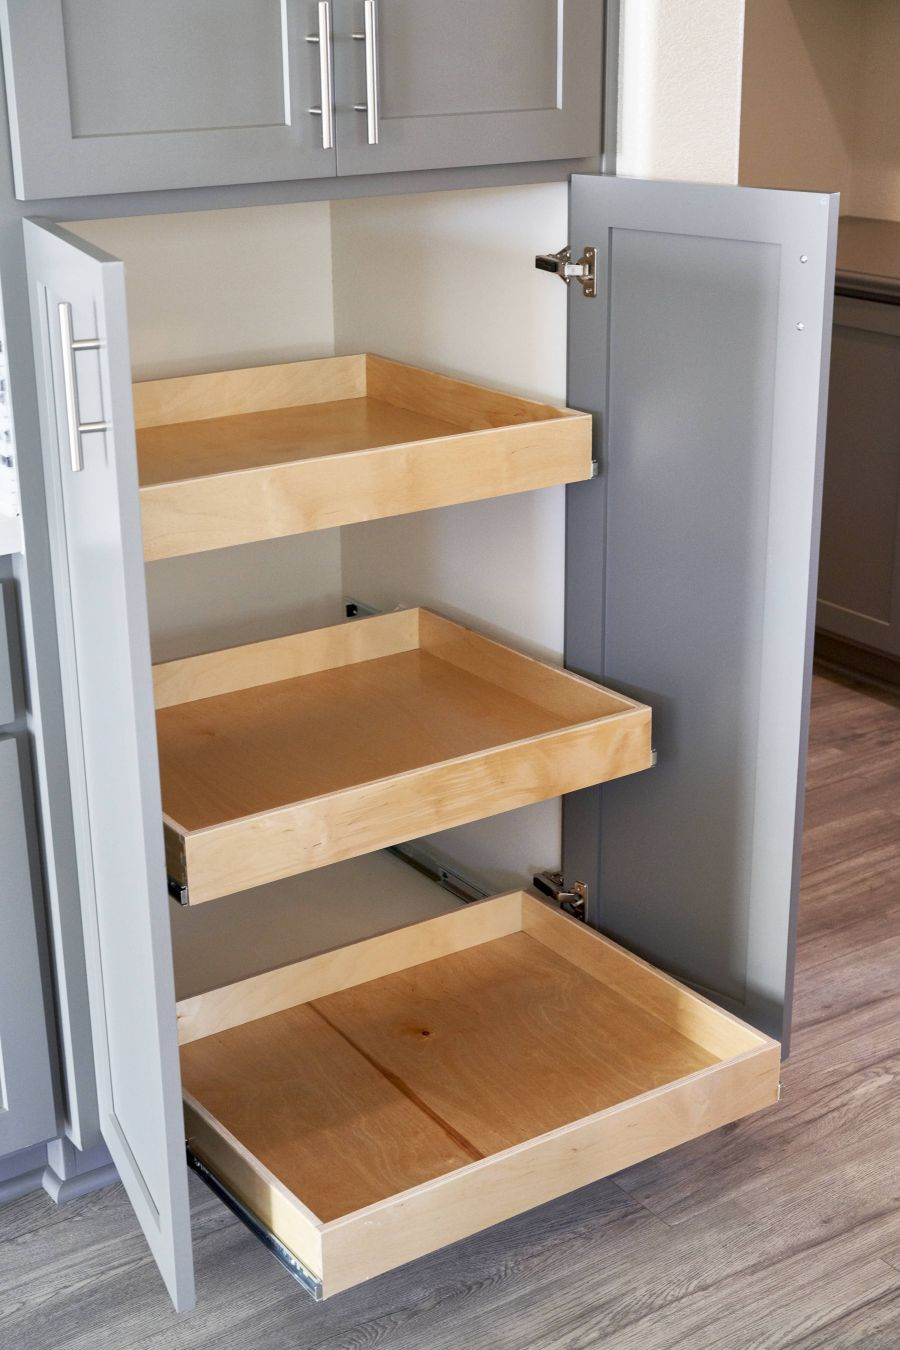 Pantry Option with roll-out drawers